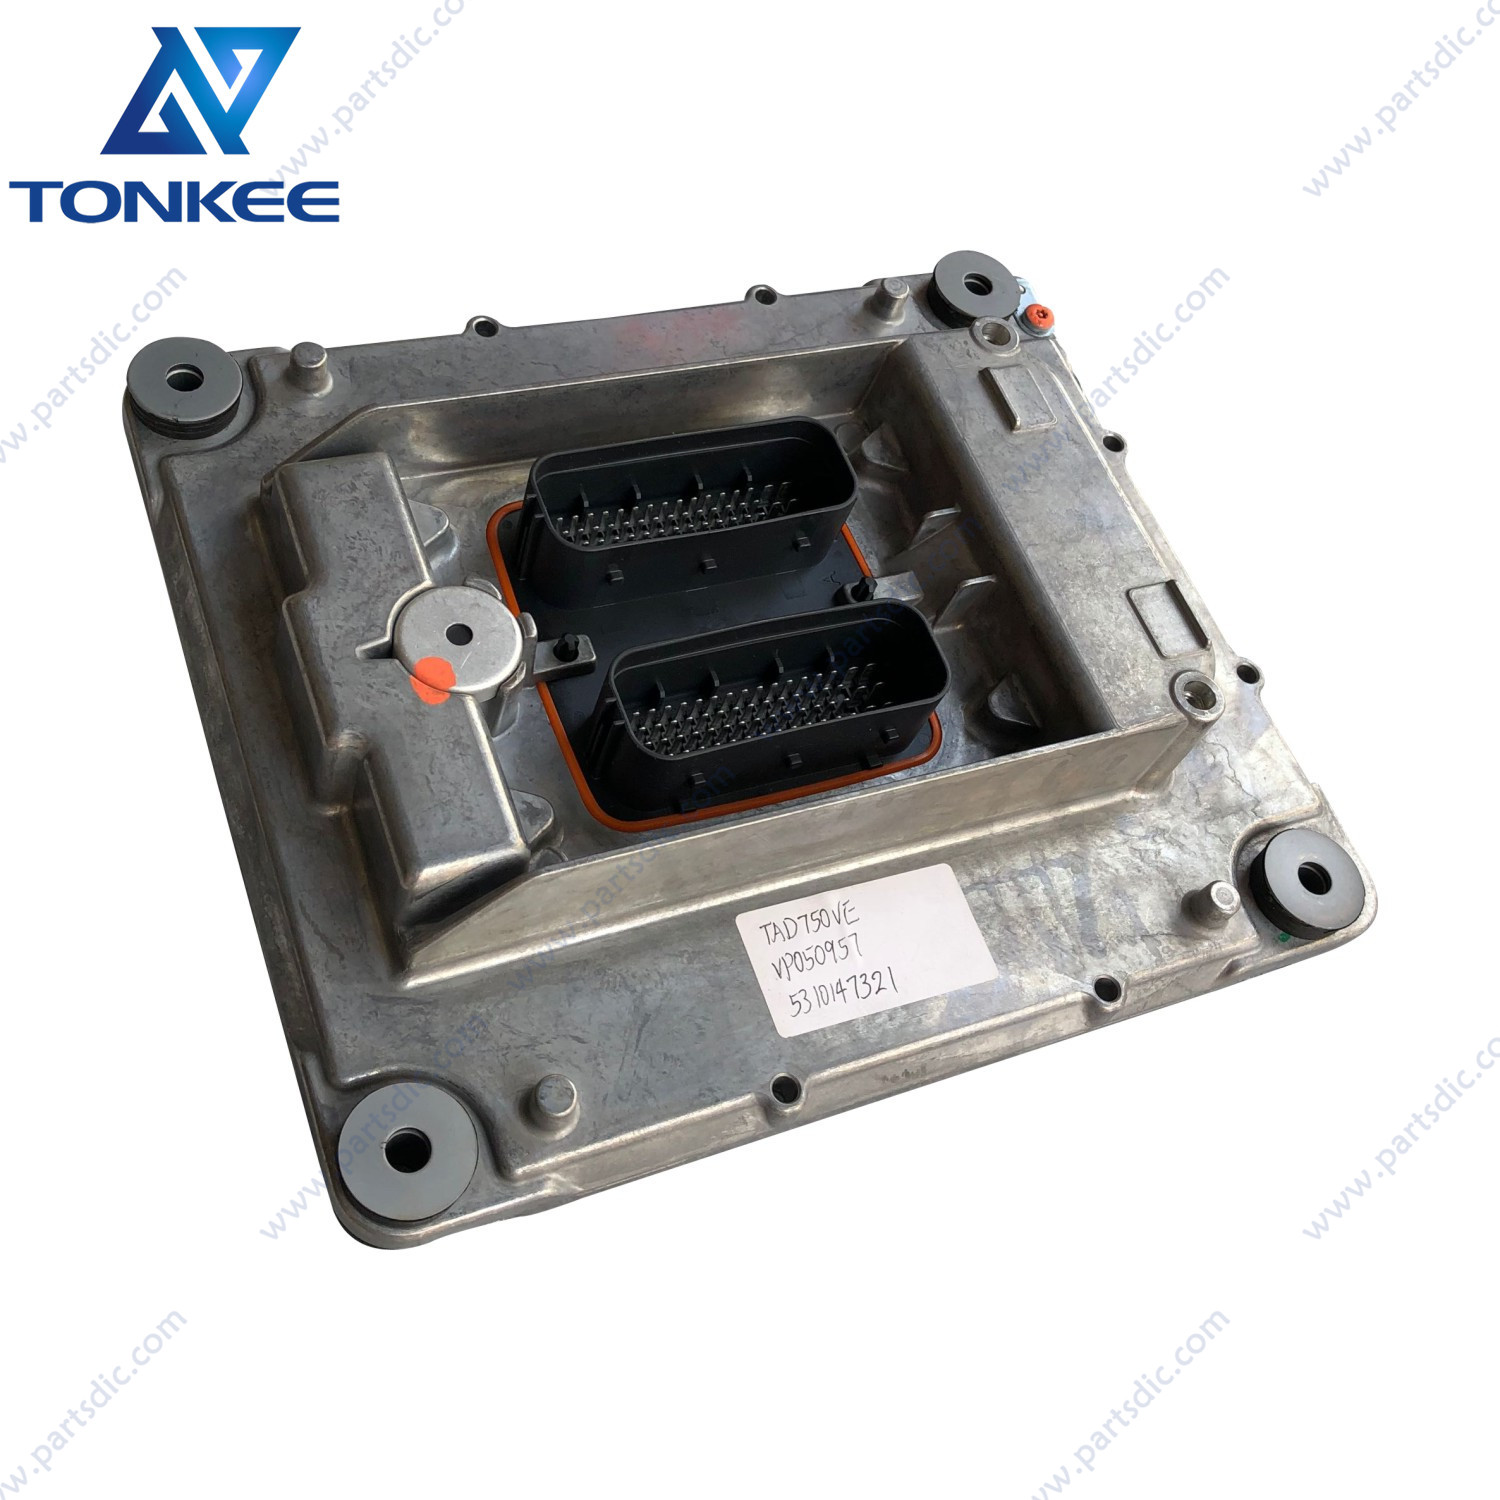 NO. 5310147321 60100001 60100001P03 TRW ECU engine control unit TAD750VE DCE140-6 D7E engine electronic control unit Serial for VOLVO